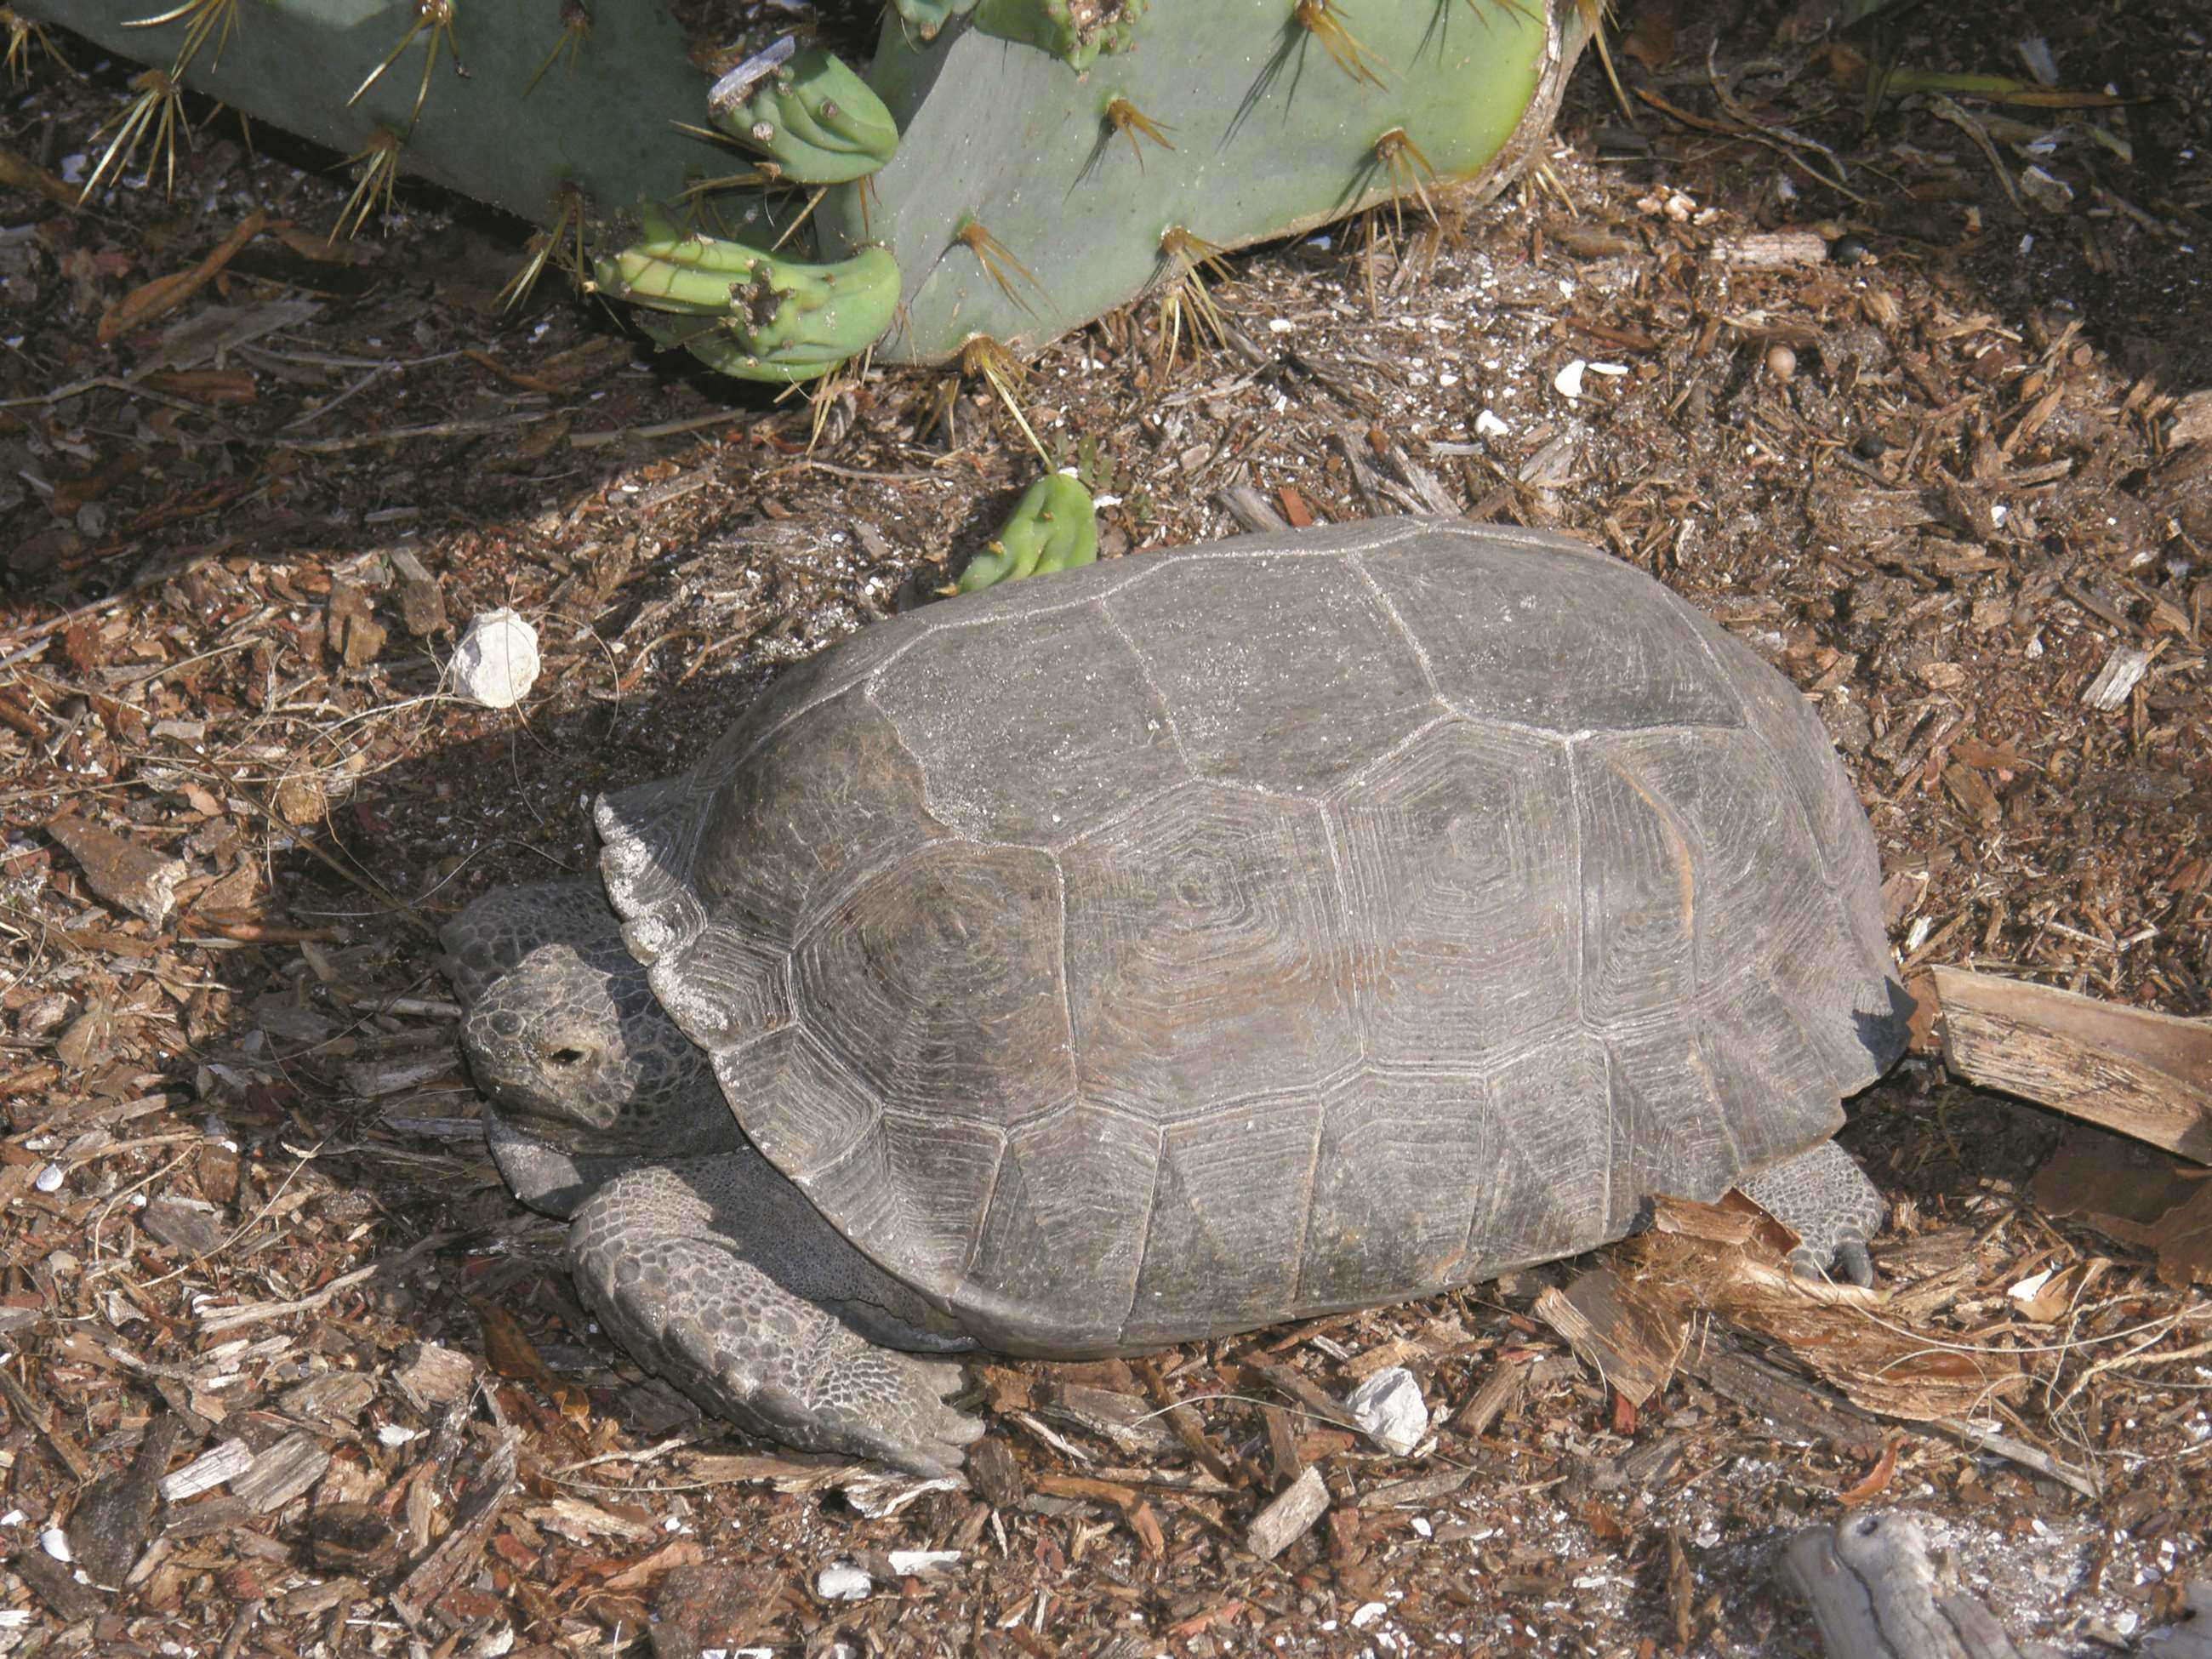 one of the many protected Gopher Tortoises living at Barefoo